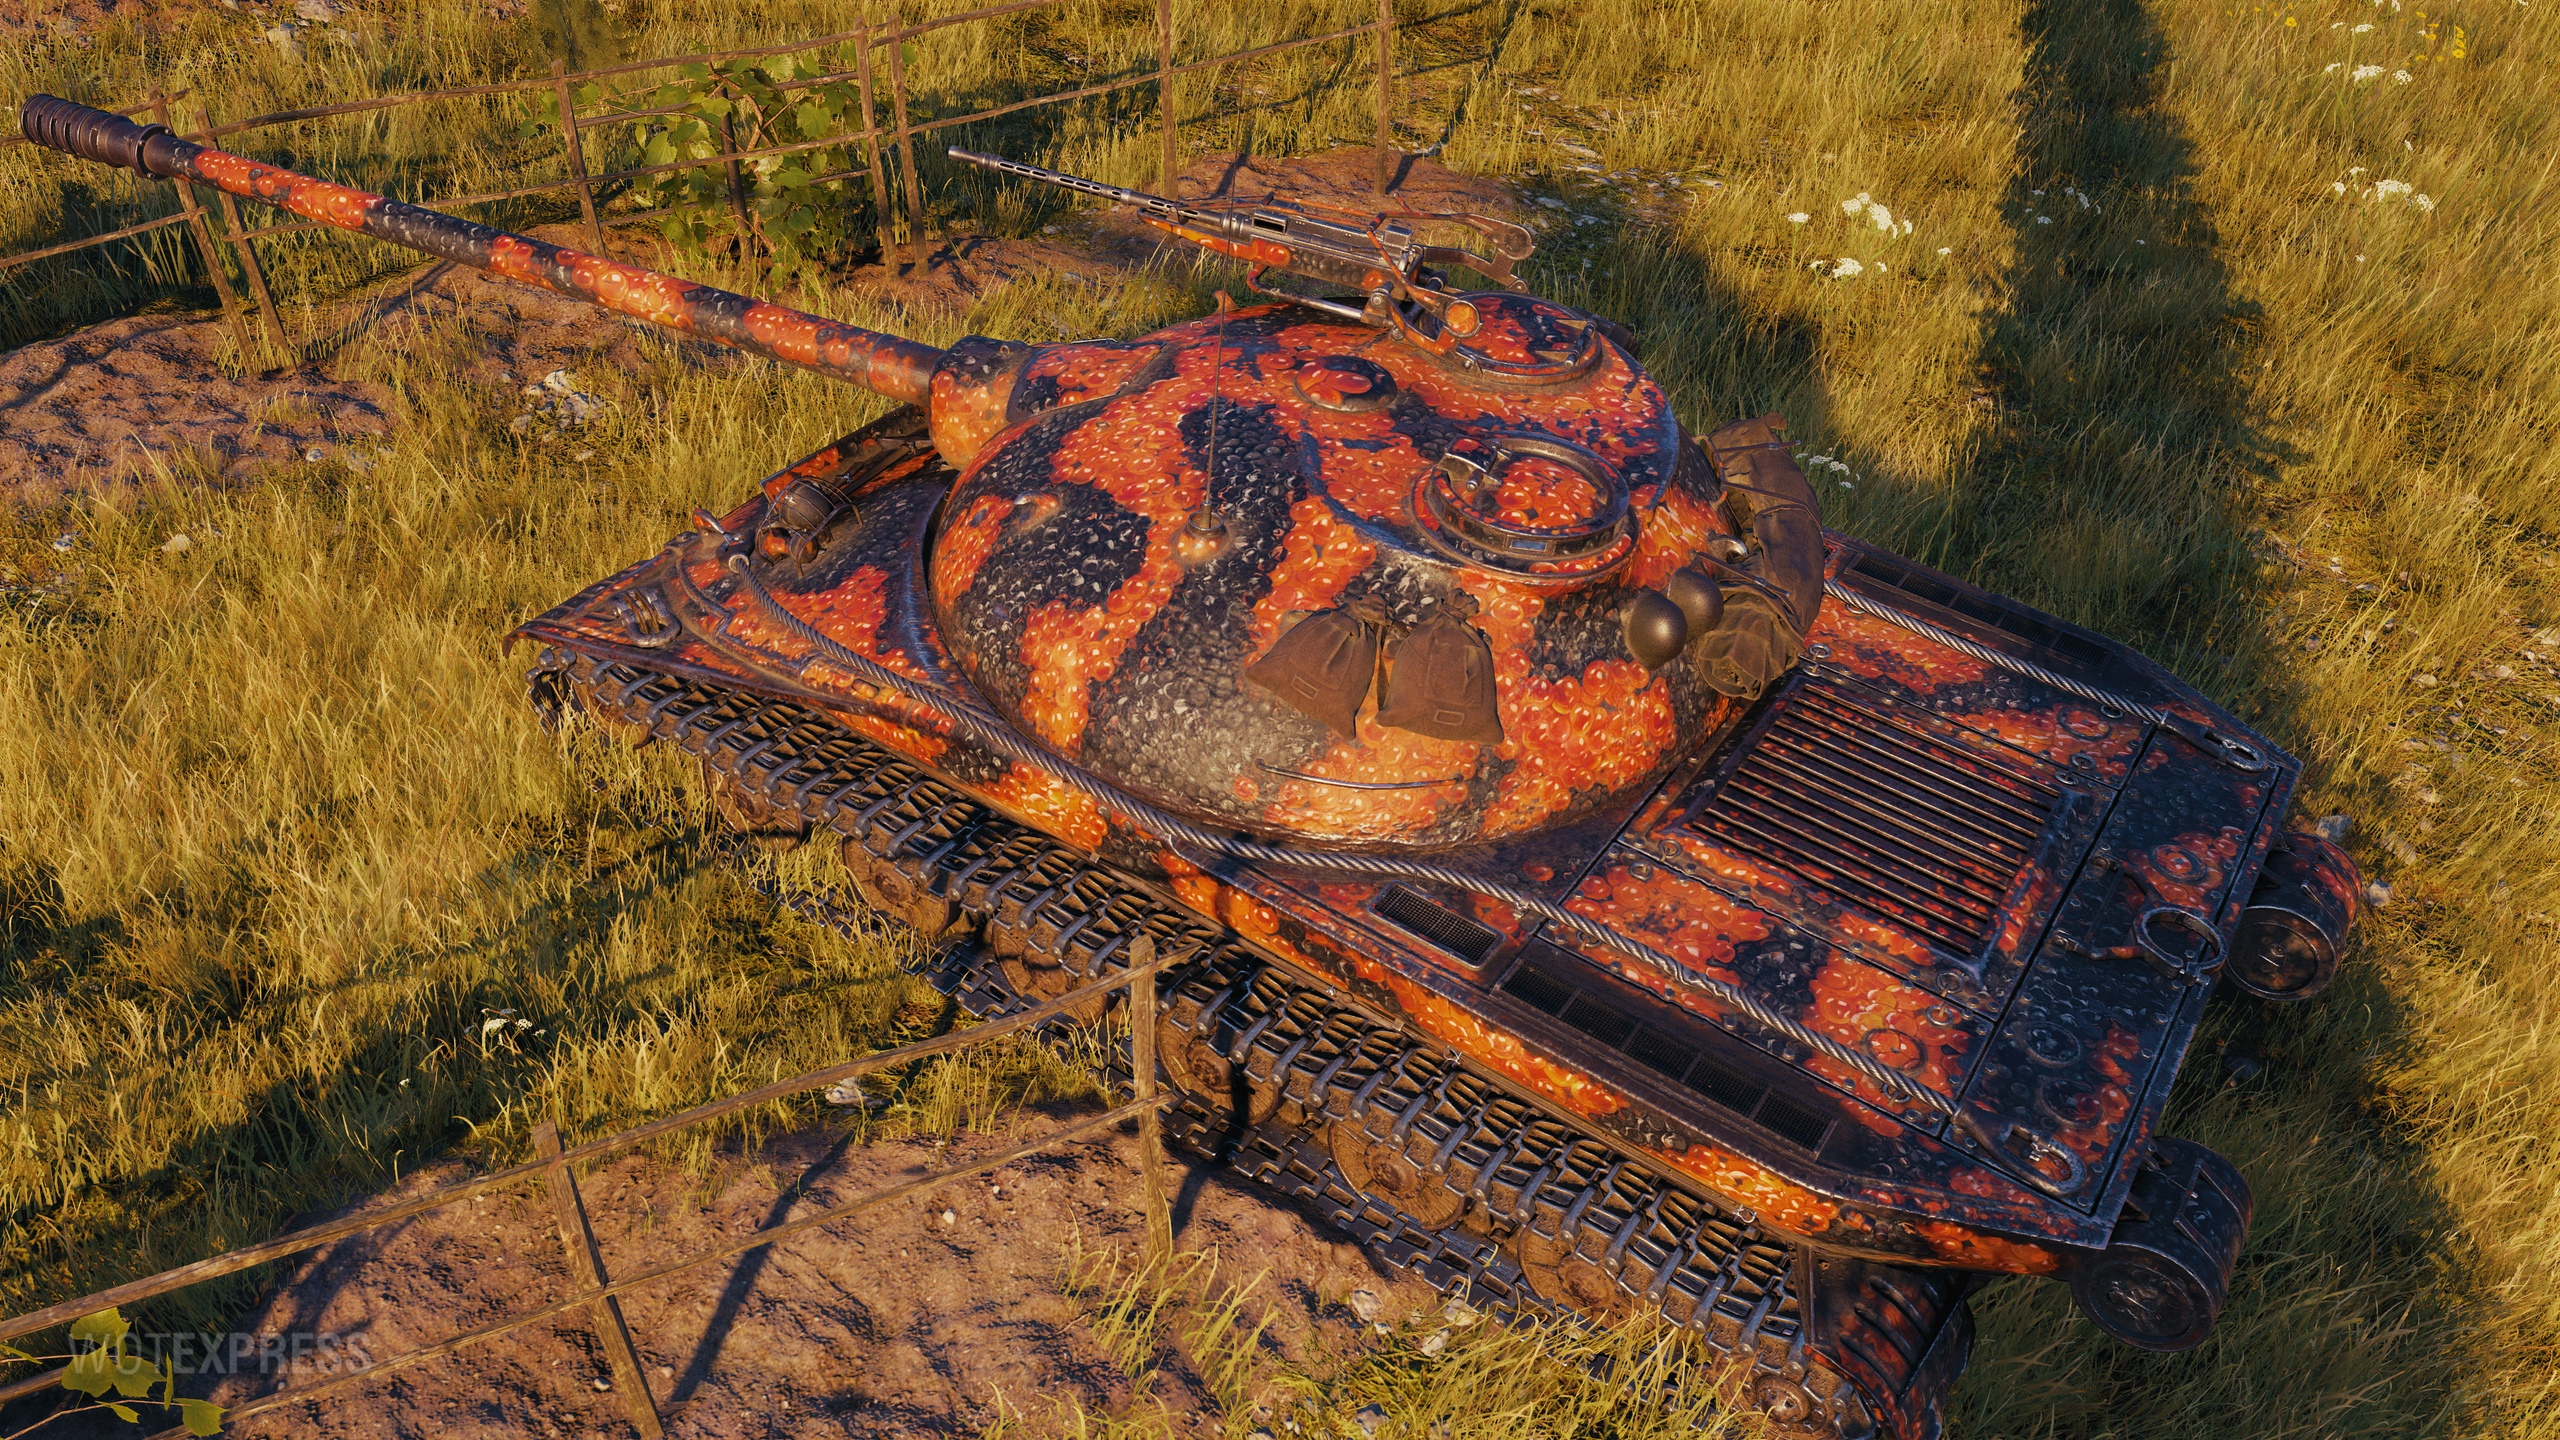 World Of Tanks Christmas Styles 2021 World Of Tanks Holiday Ops 2021 Special Festive 2d Styles